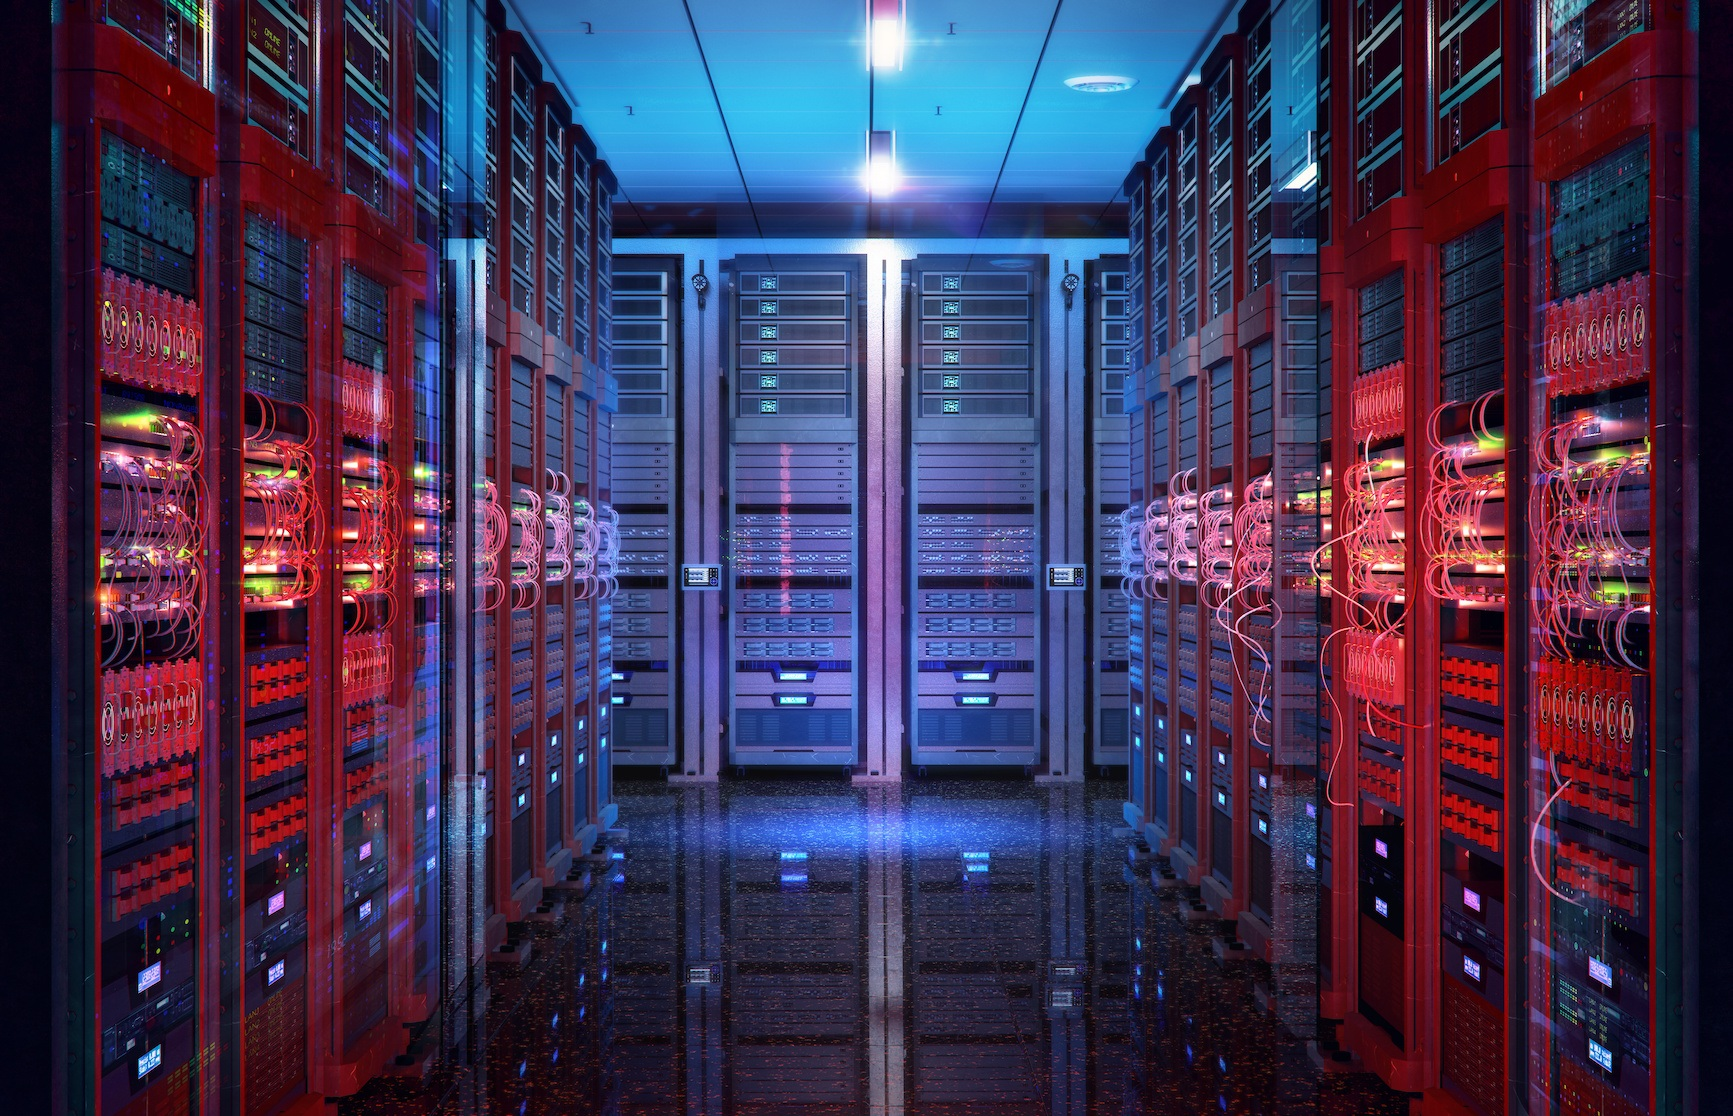 Data center with server racks, IT working server room with rows of supercomputers. 3D concept illustration of information technology, cyber network, hosting, data backup, render farm, storage cloud